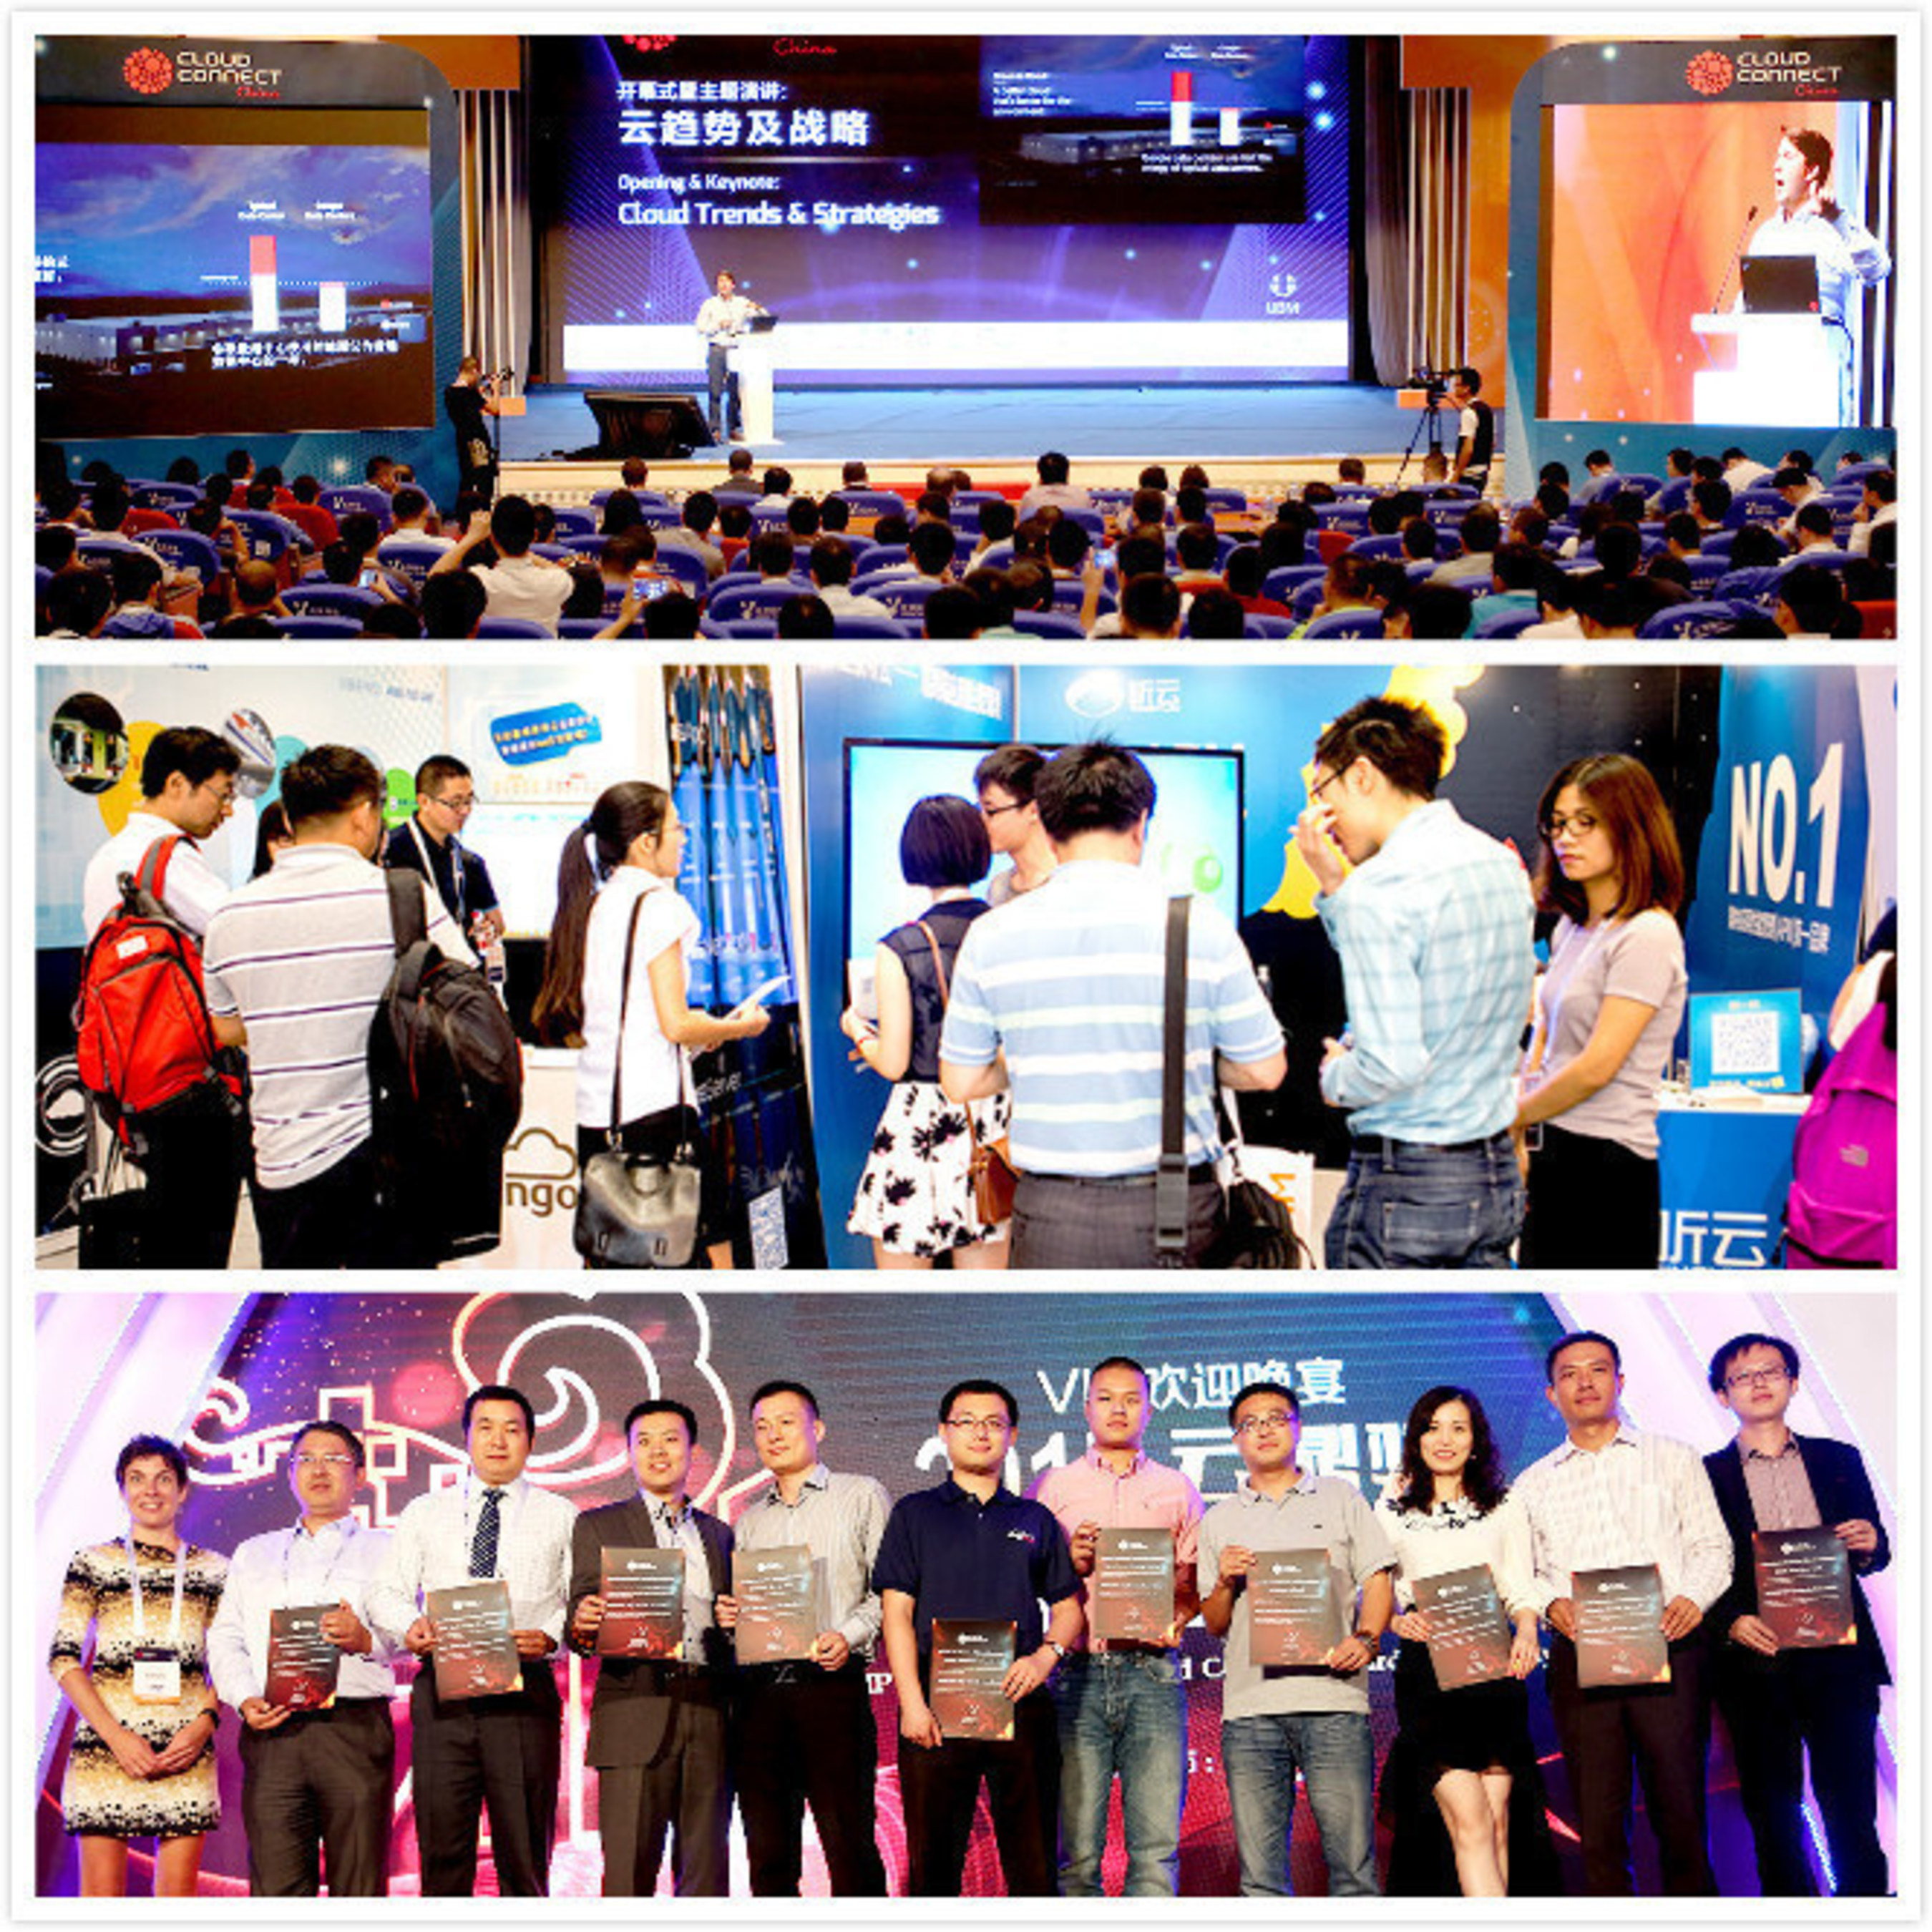 Cloud Connect China 2015 onsite photo